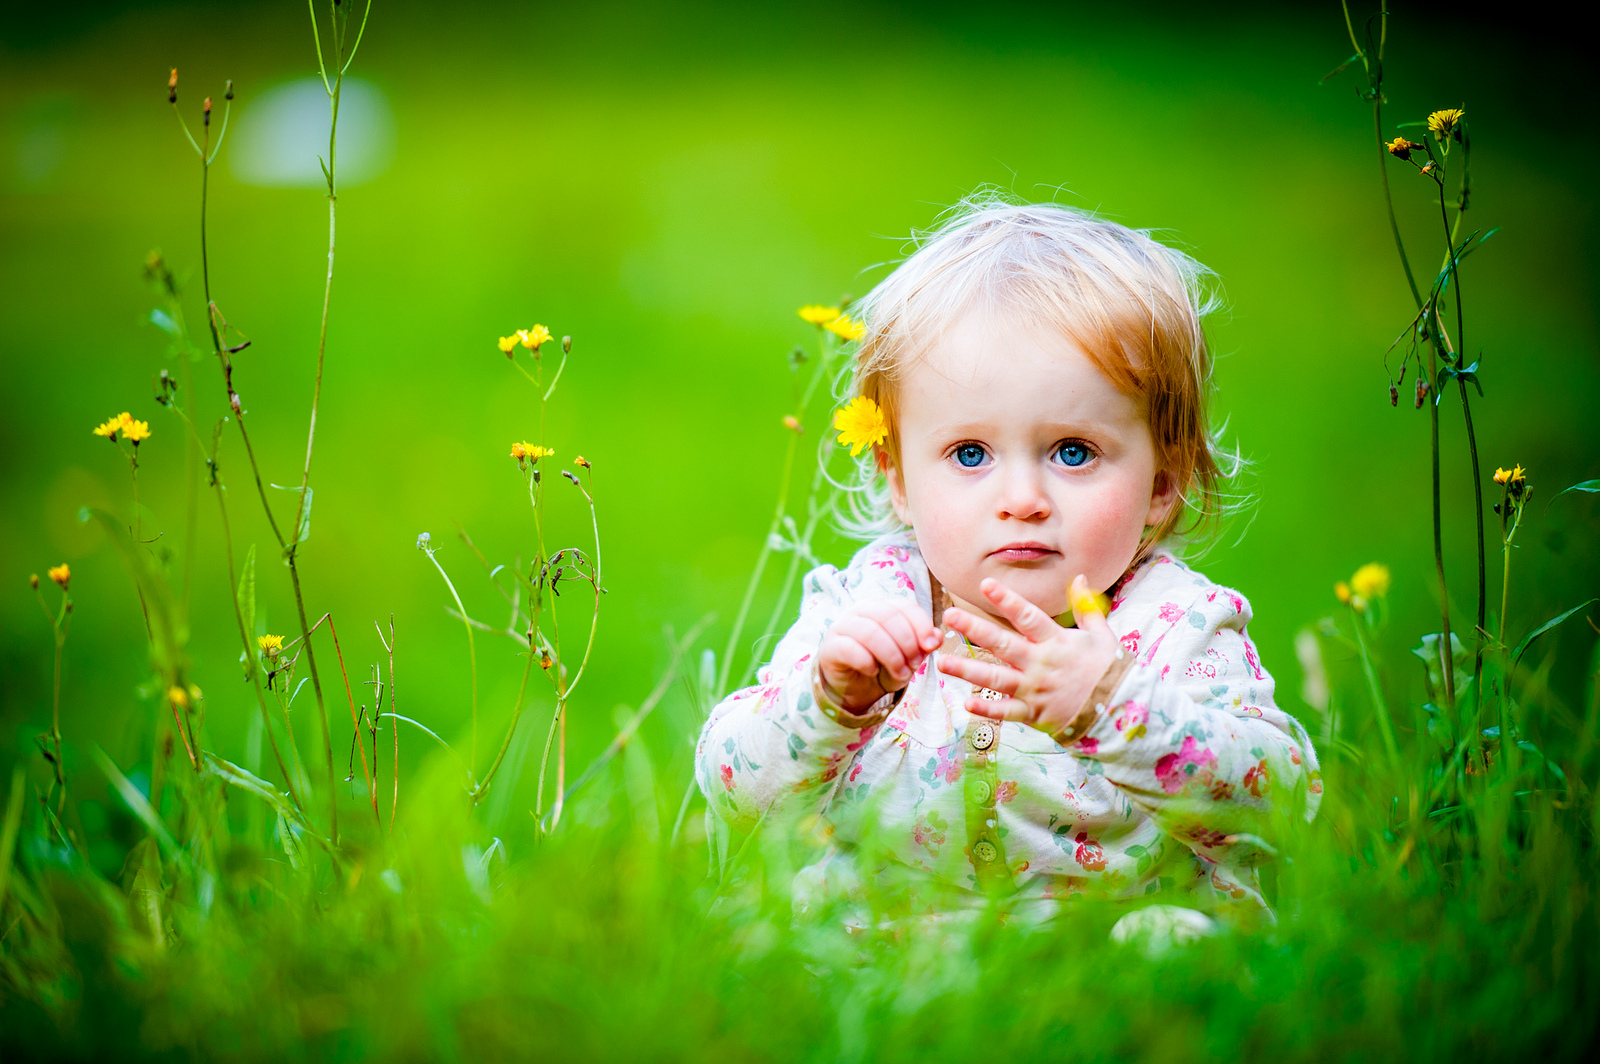 Cute Baby Girl Pictures Wallpapers: A Place For Free HD Wallpapers